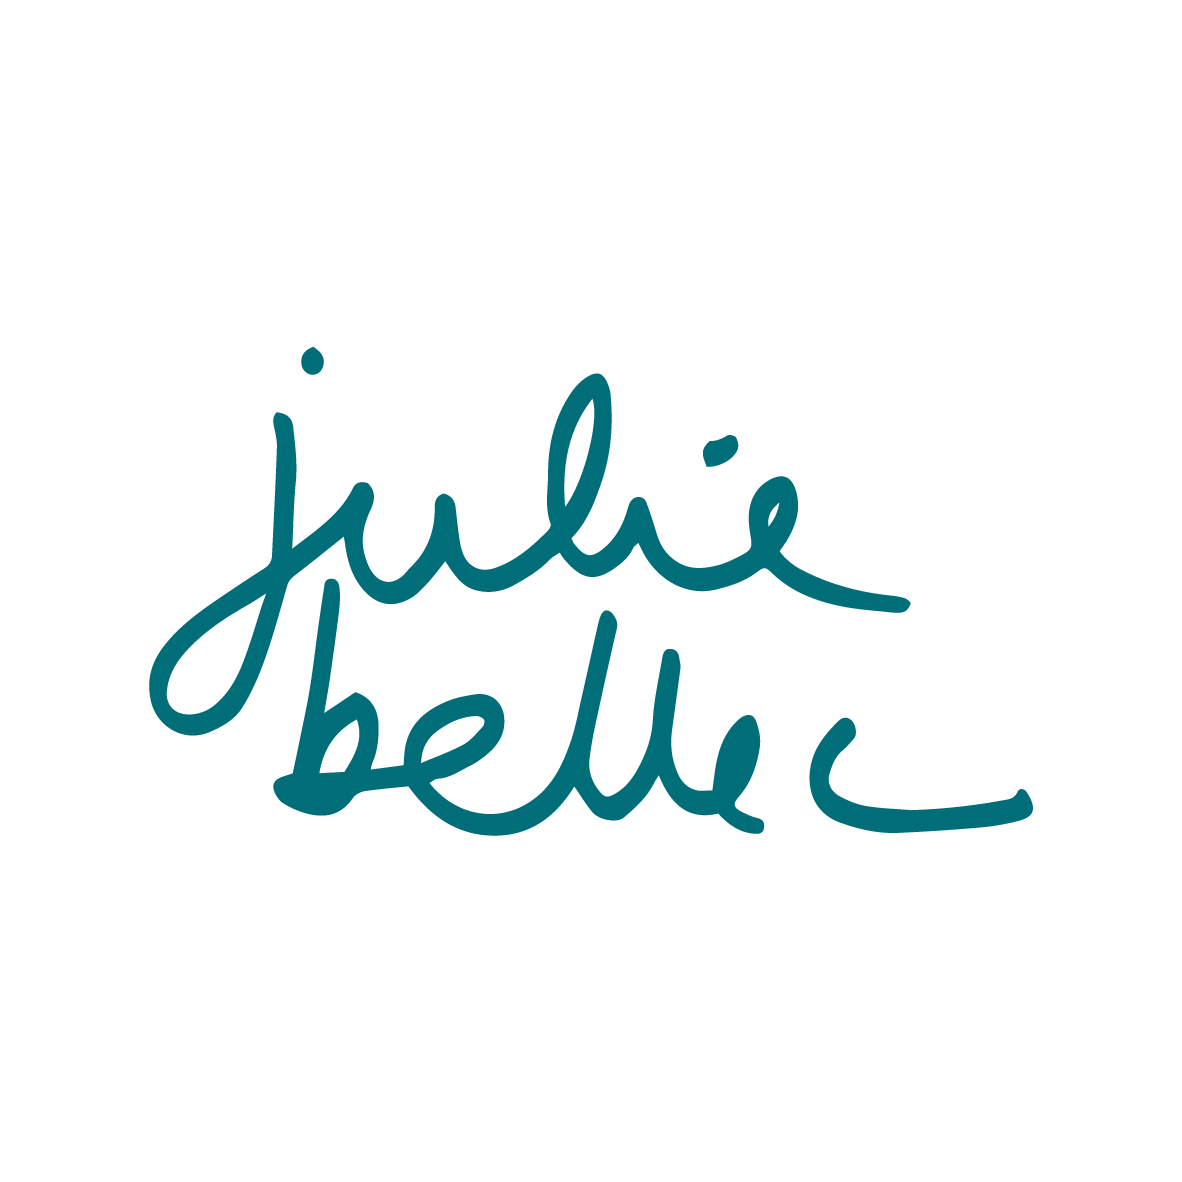 Julie Bellec